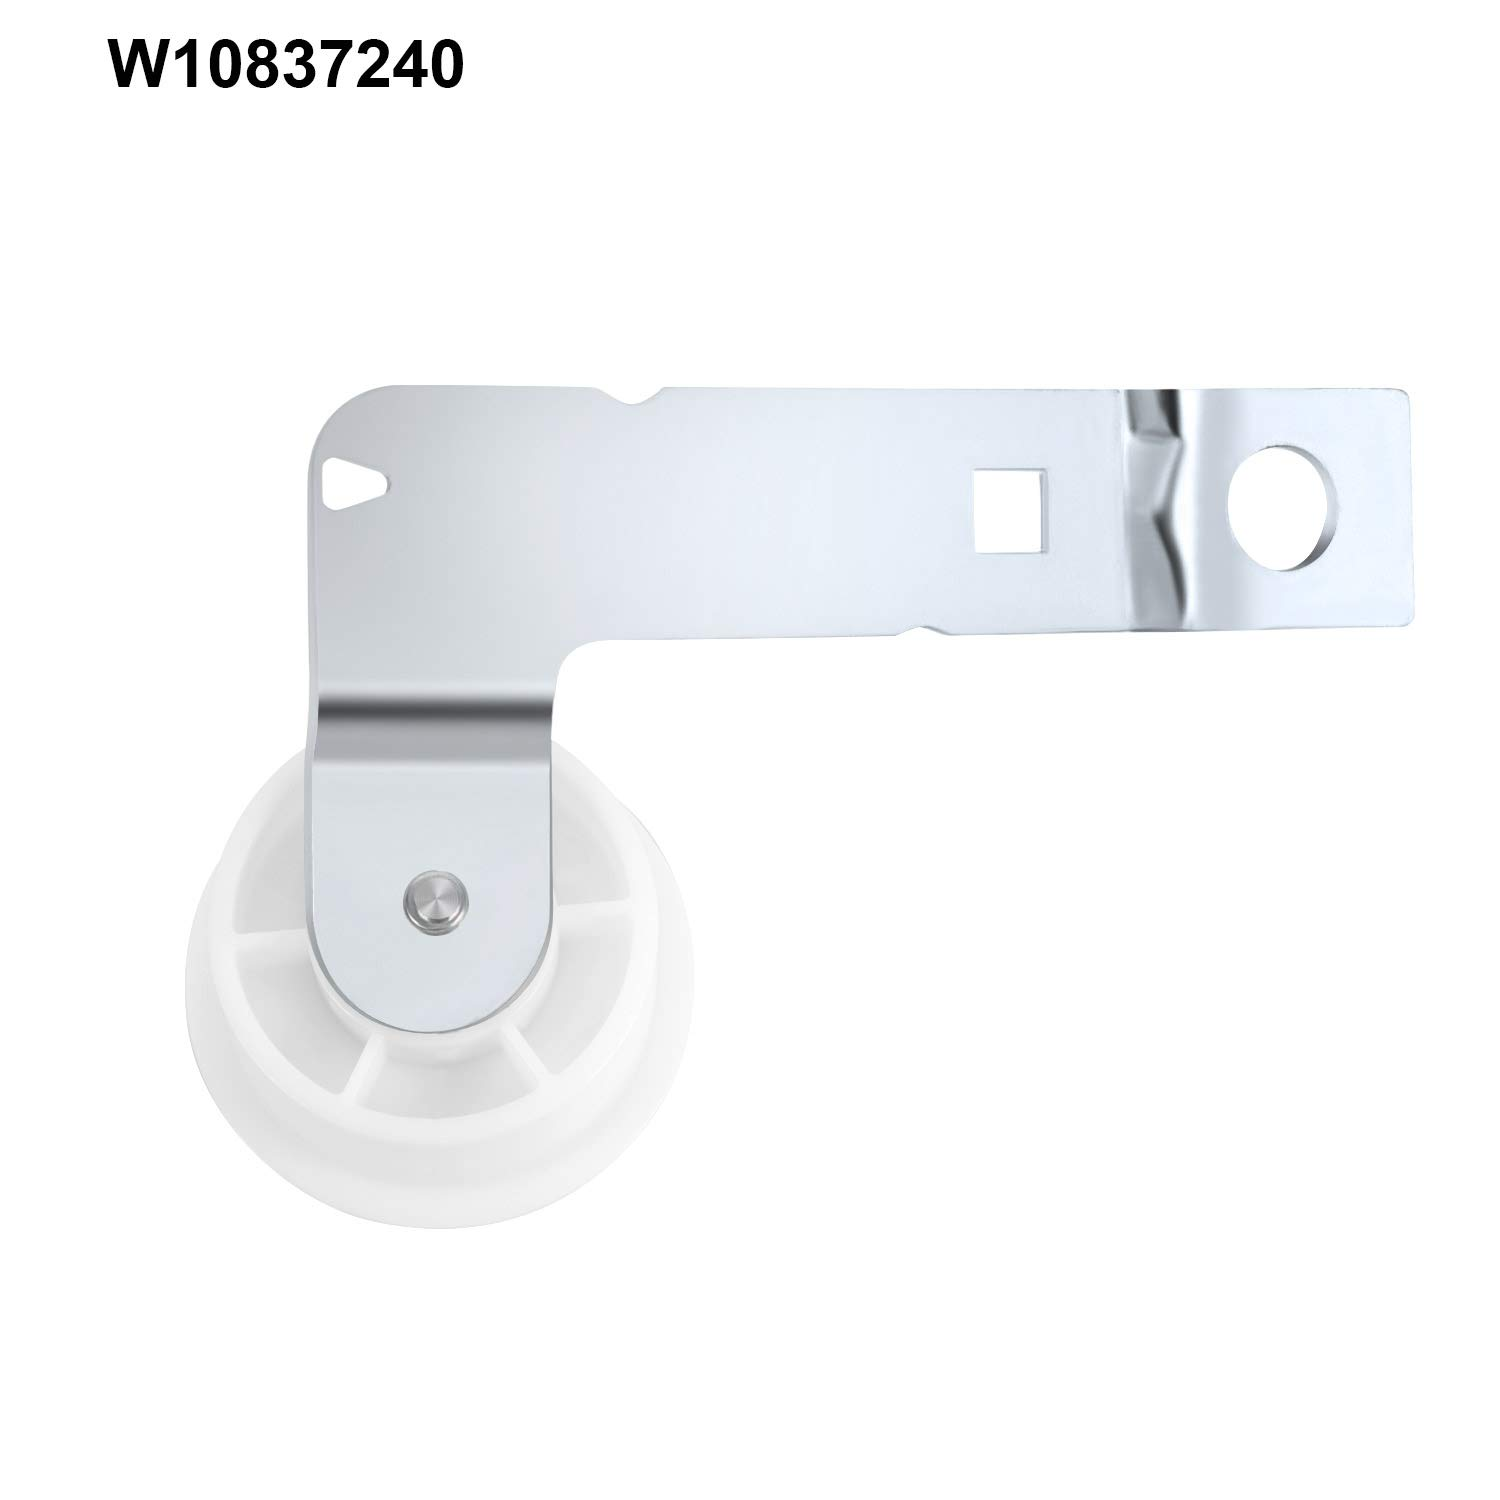 279640 Dryer Idler Pulley and W10837240 Dryer Idler Pulley with Bracket Replacement Part Kit Compatible with Maytag Hotop 661570 Dryer Drum Belt Kenmore Admiral and More